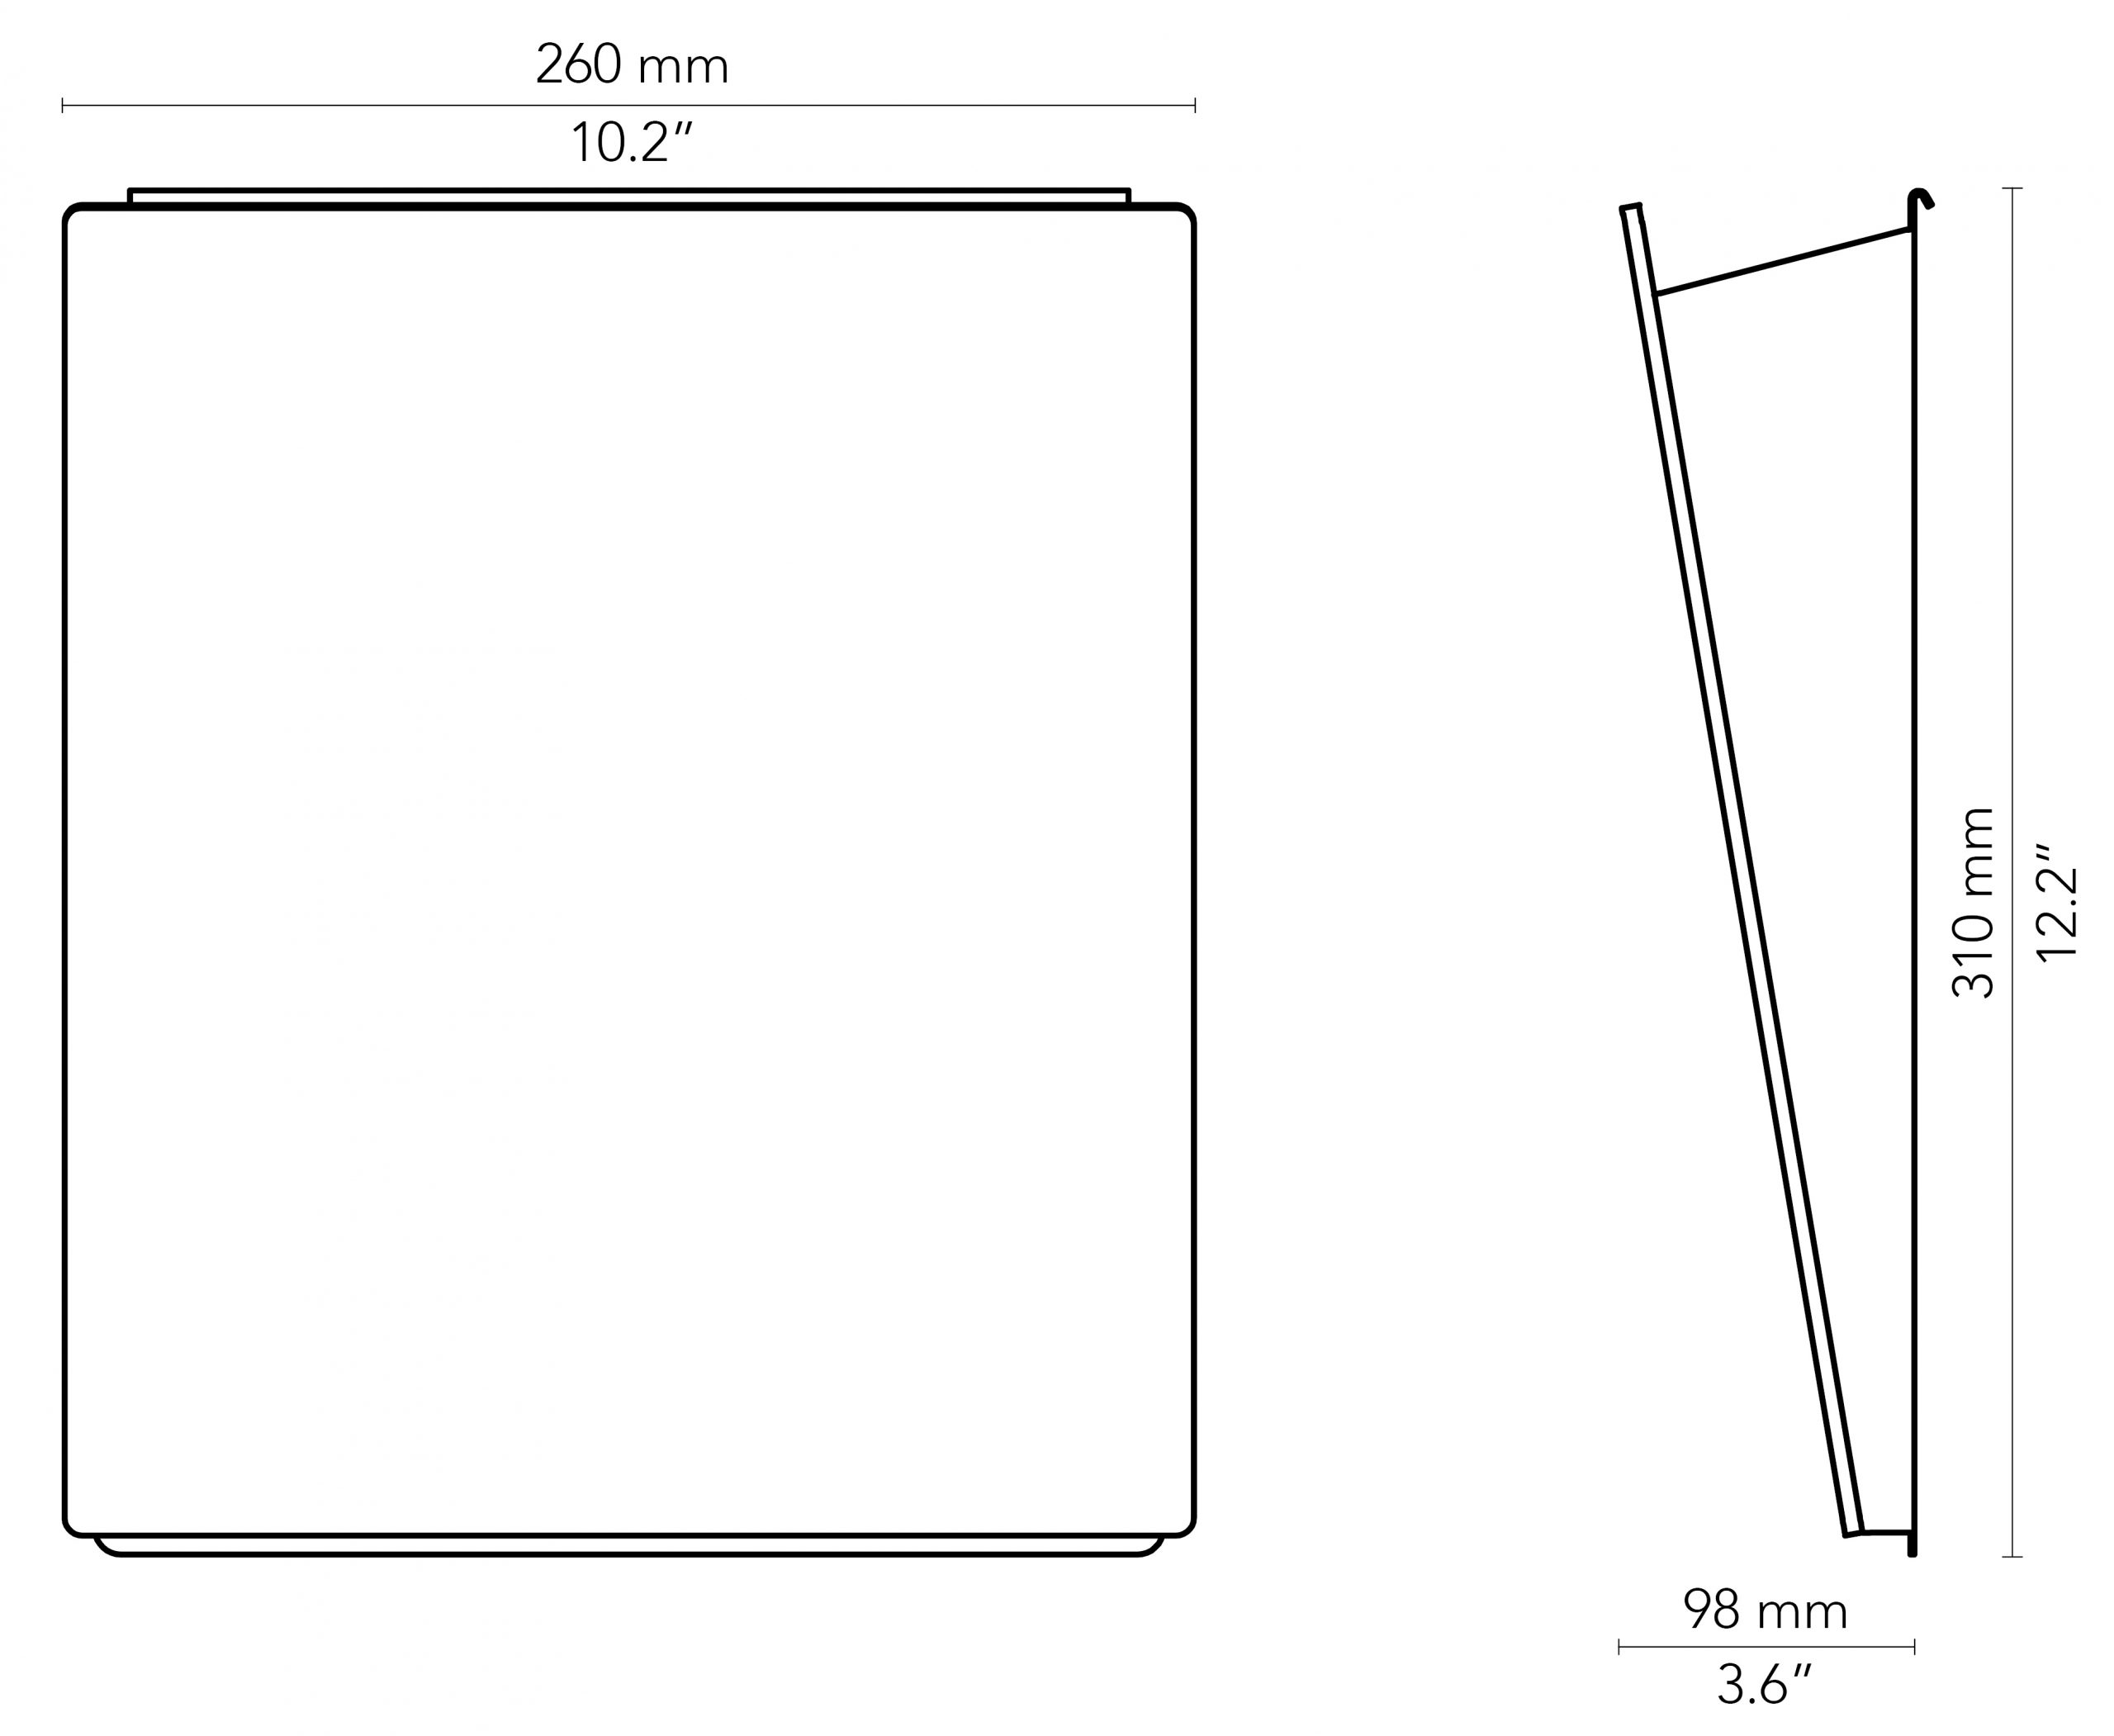 CHAT BOARD Magazine Rack drawings with measurements in mm